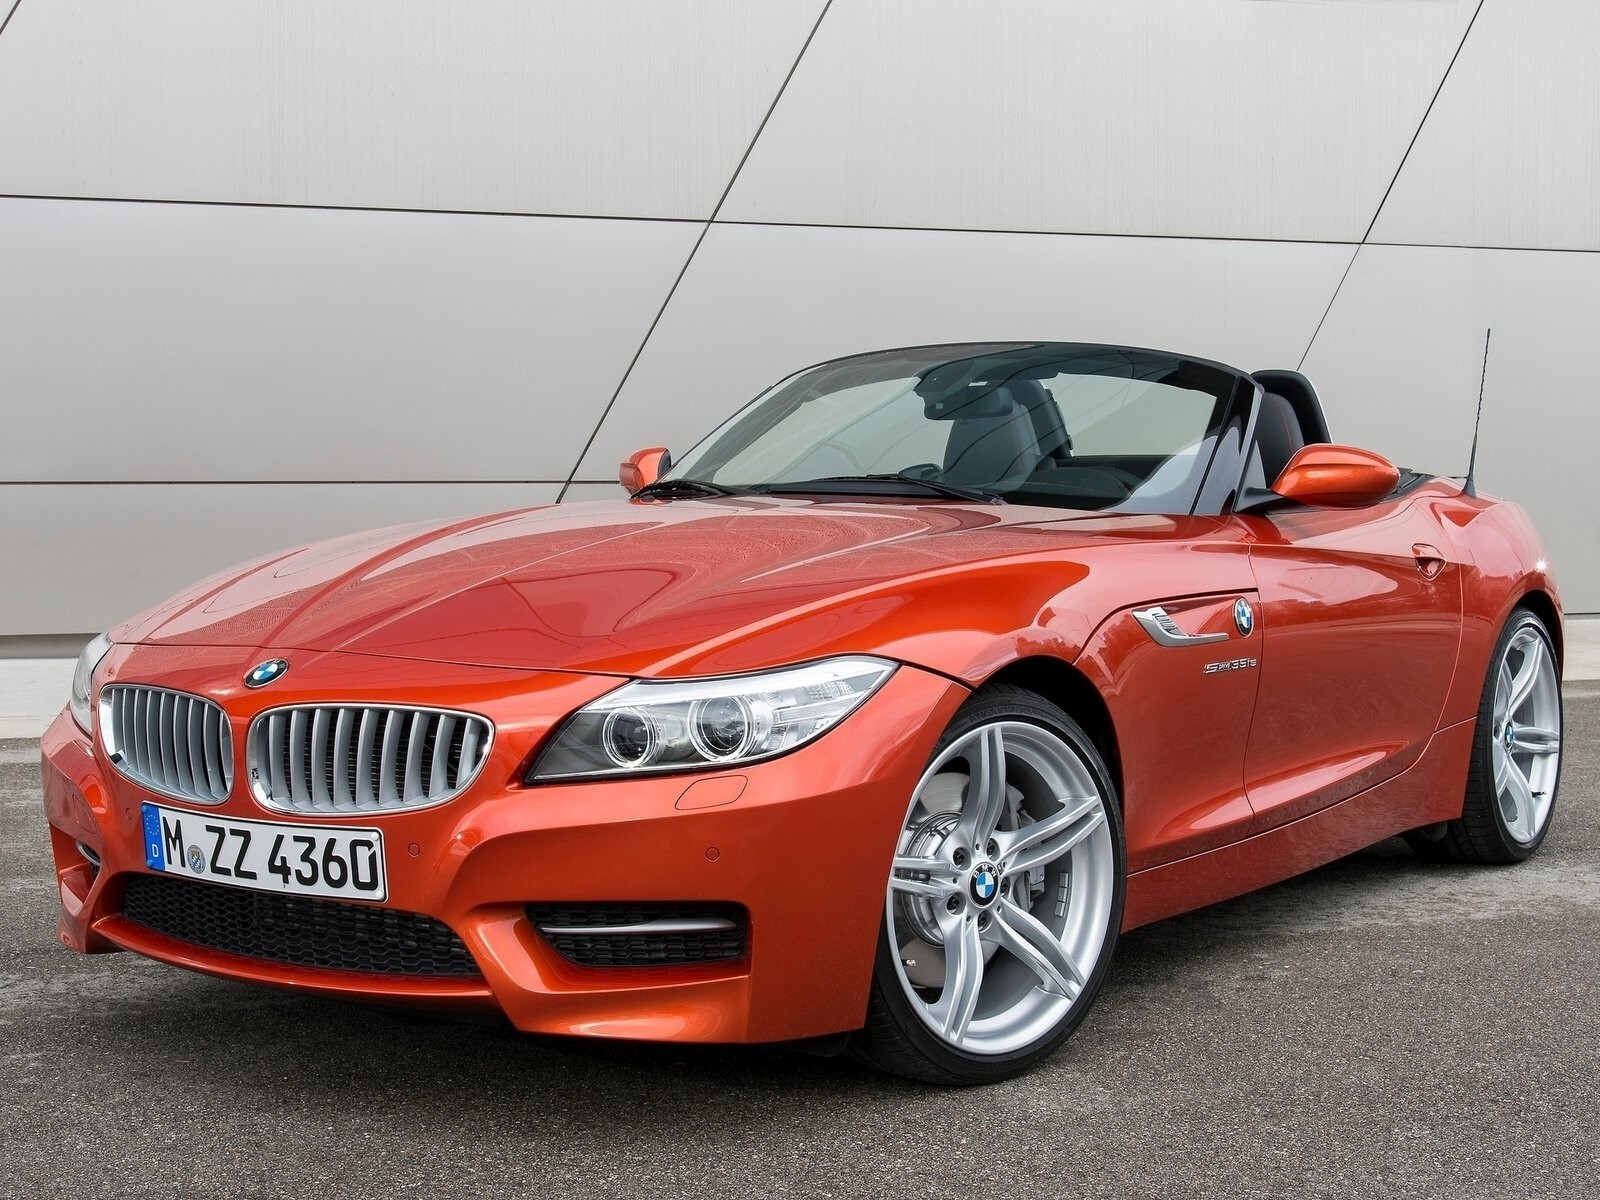 New 2 Seater Convertible Bmw Z4 Roadster 2017 Car